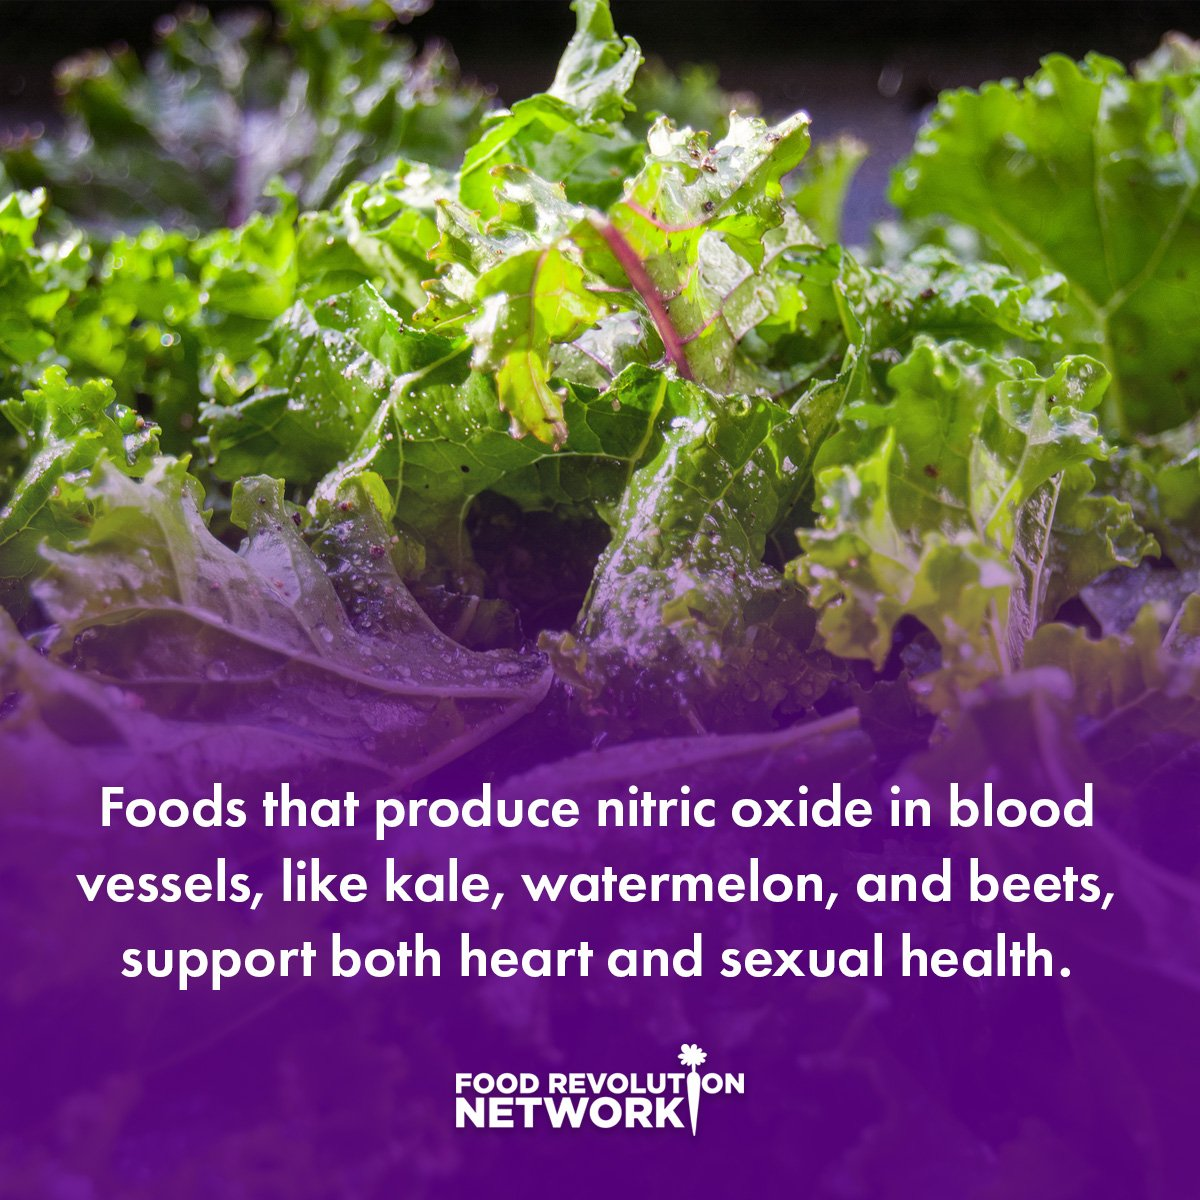 Foods that produce nitric oxide in blood vessels, like kale, watermelon, and beets, support both heart and sexual health.